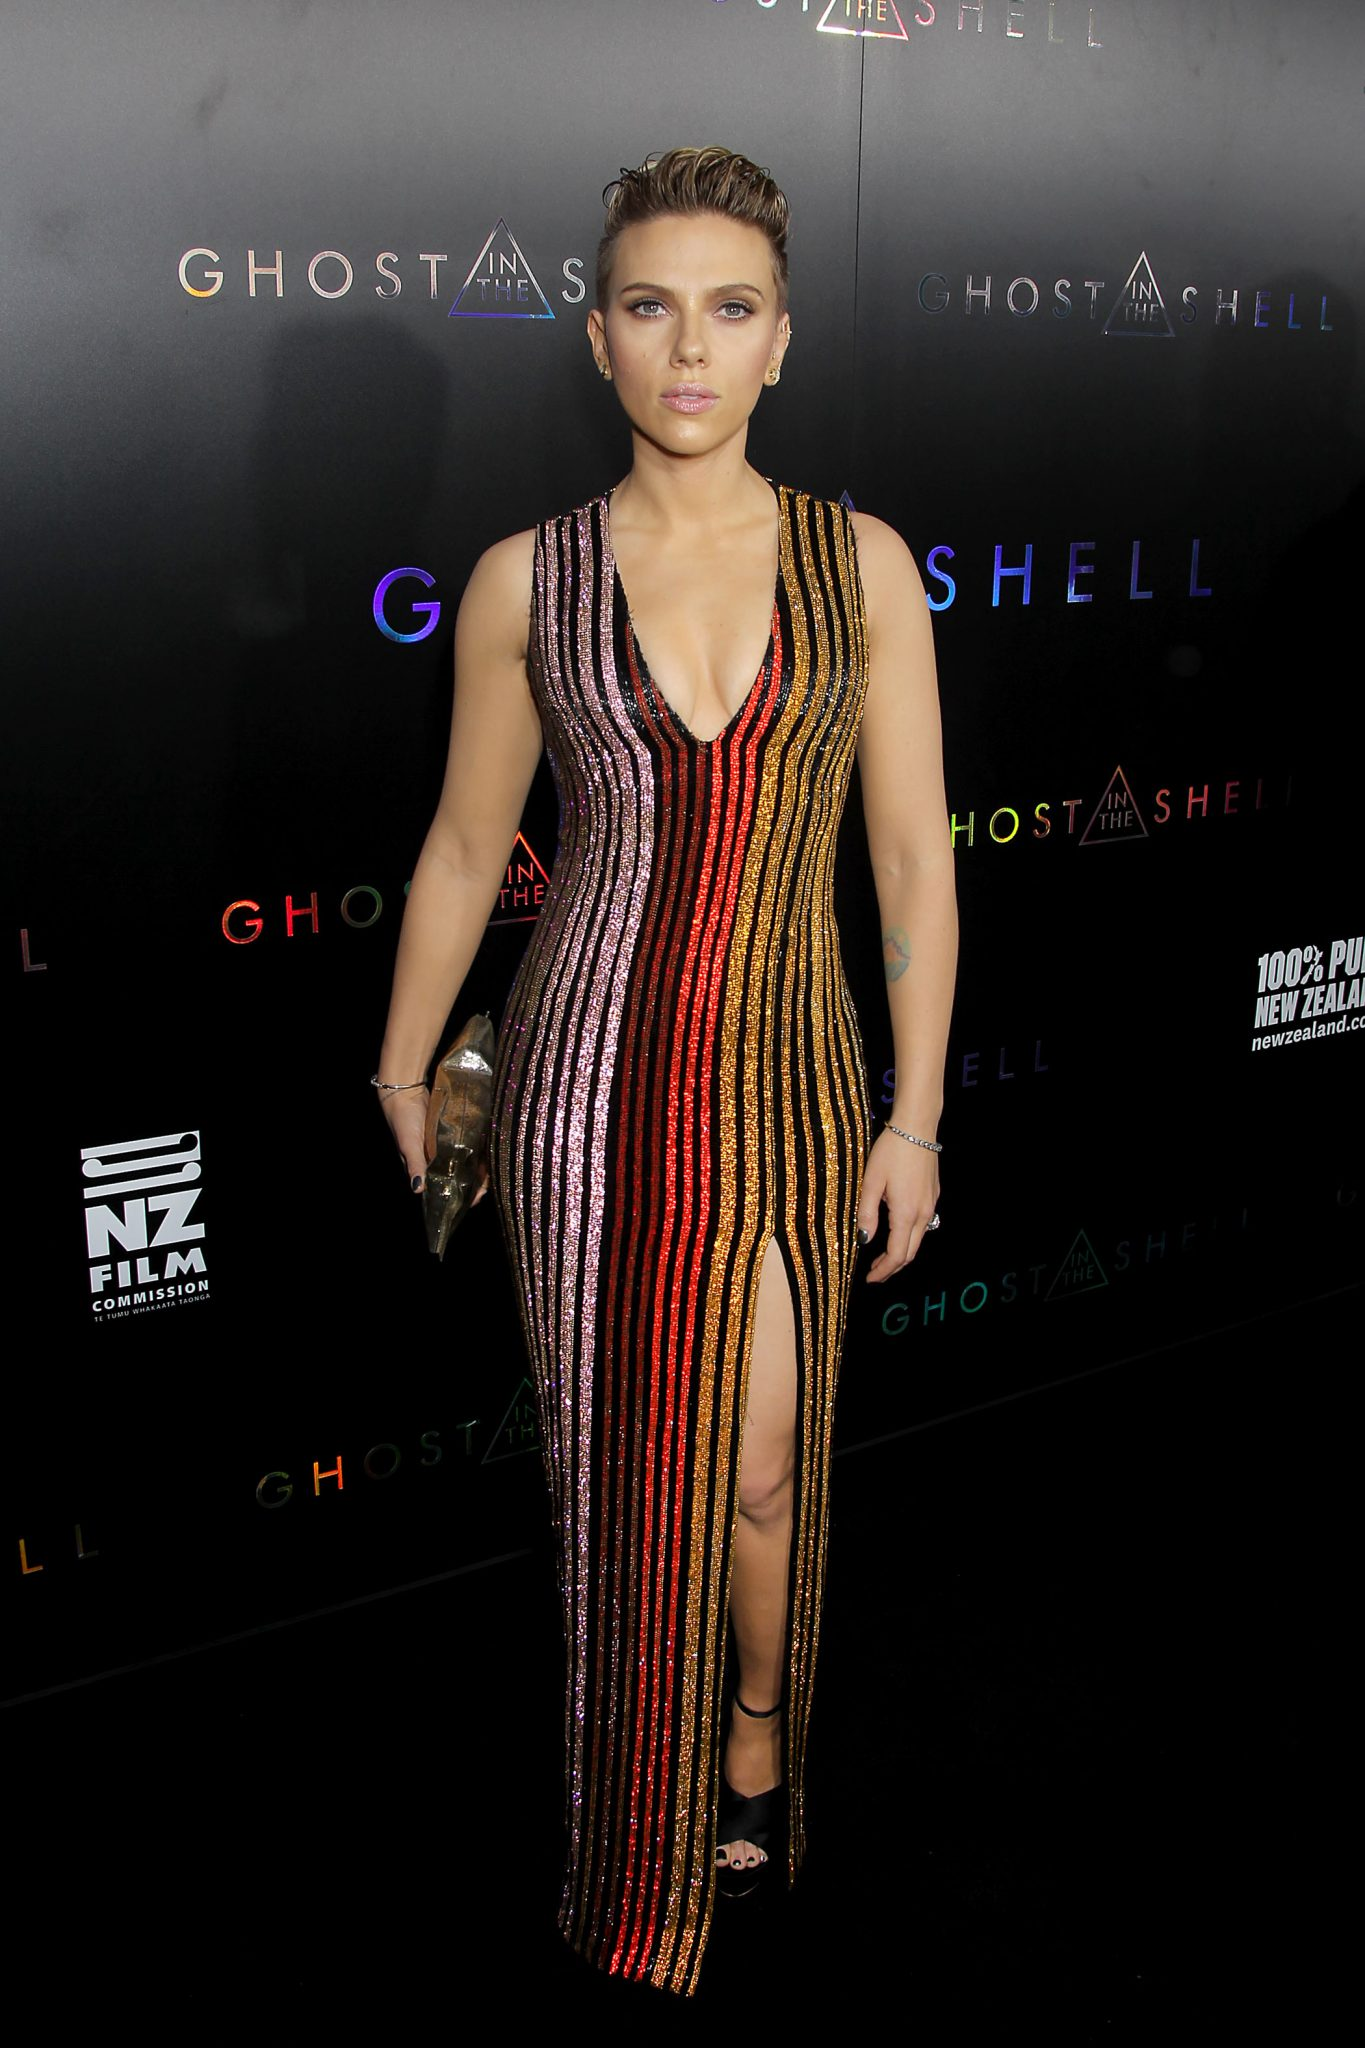 Wardrobe Breakdown: Scarlett Johansson At Ghost In The Shell Premiere In NYC